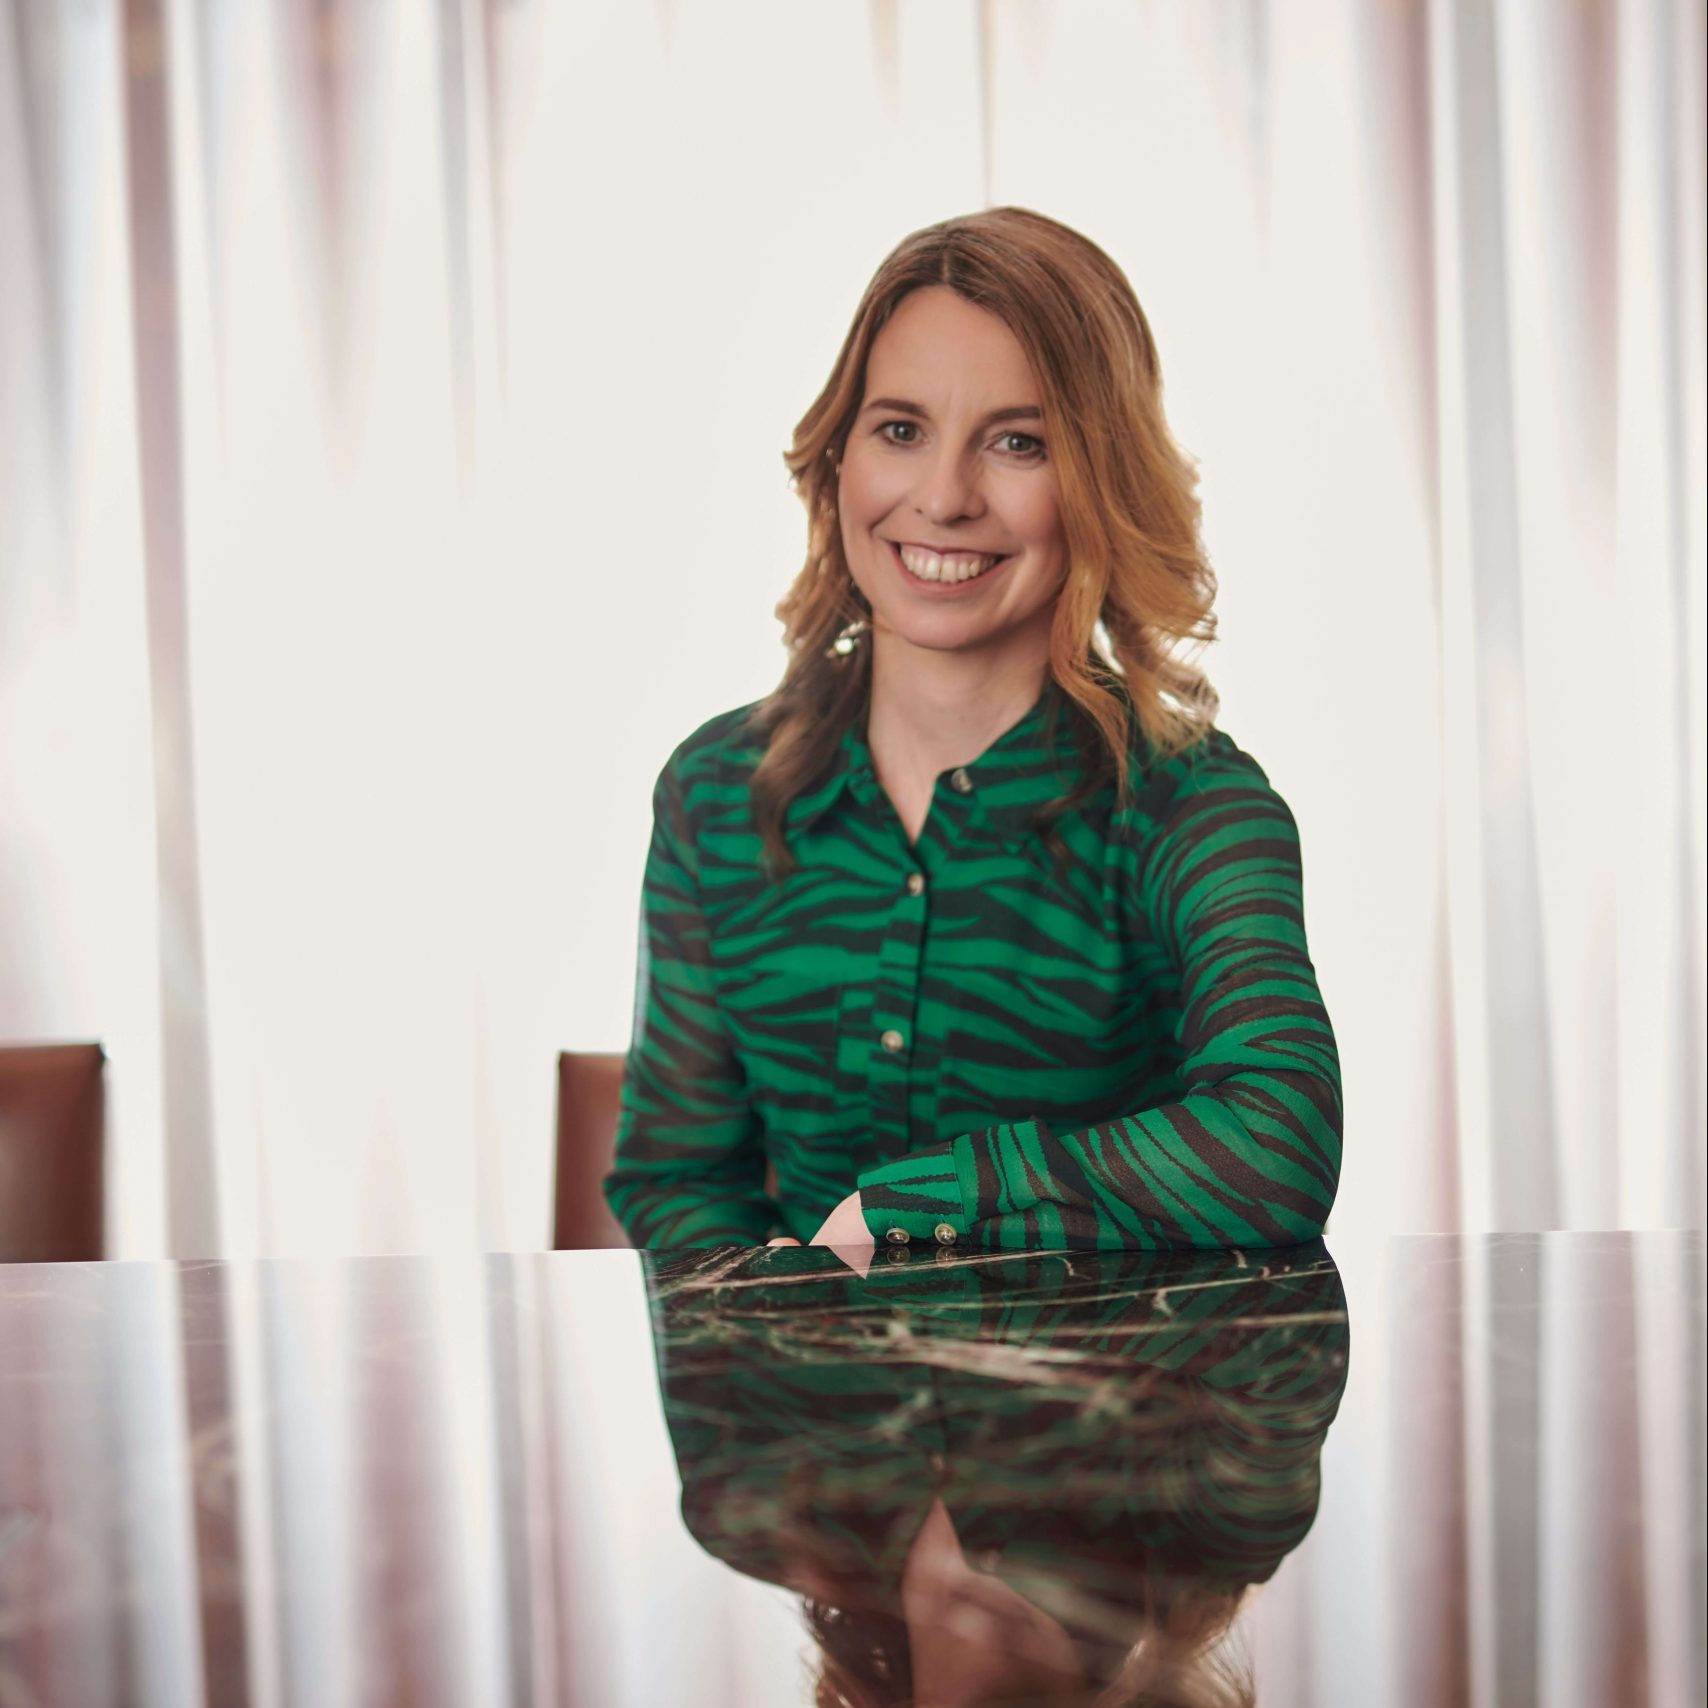 Katy Turner, in charge of PR for Meteoric Marketing, sitting at a table looking a the camera